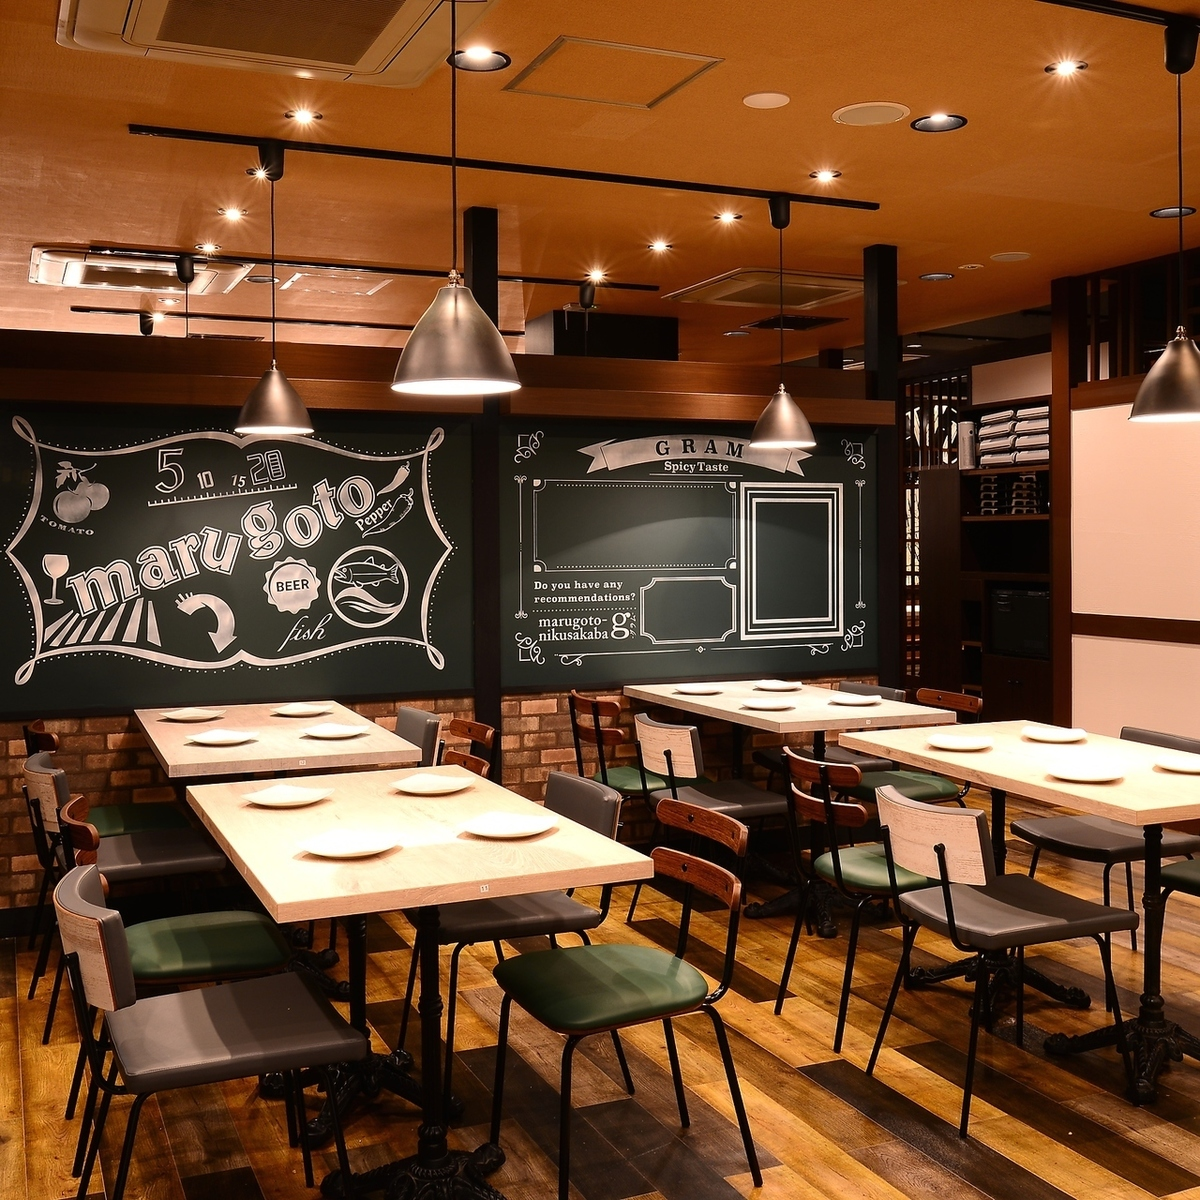 Enjoy chef special meat dishes in spacious space!